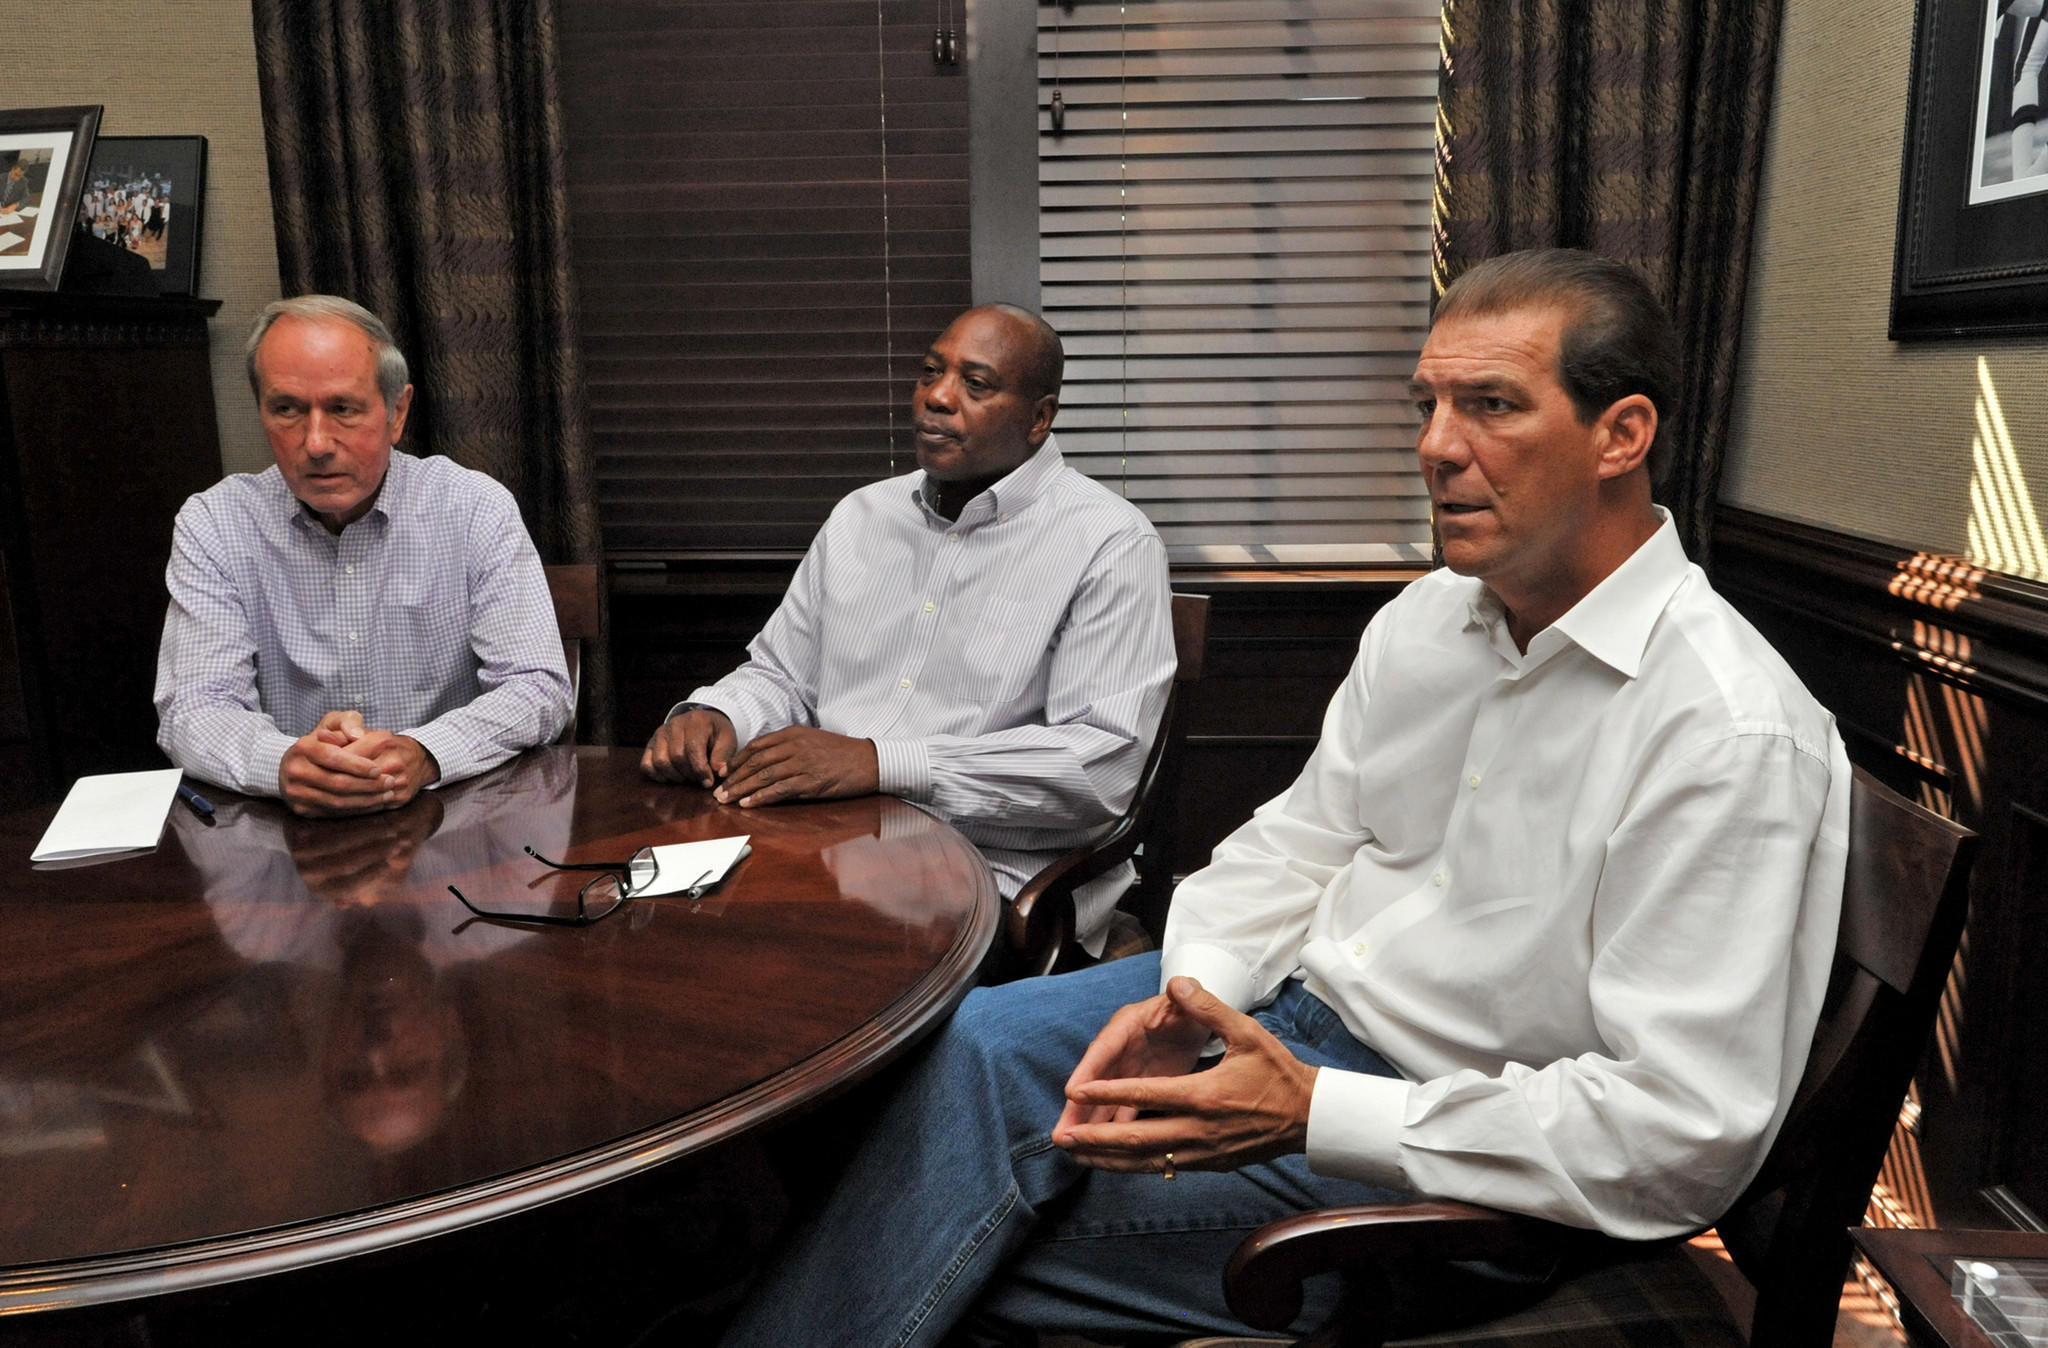 From left, Ravens president Dick Cass, general manager Ozzie Newsome, and owner Steve Bisciotti.